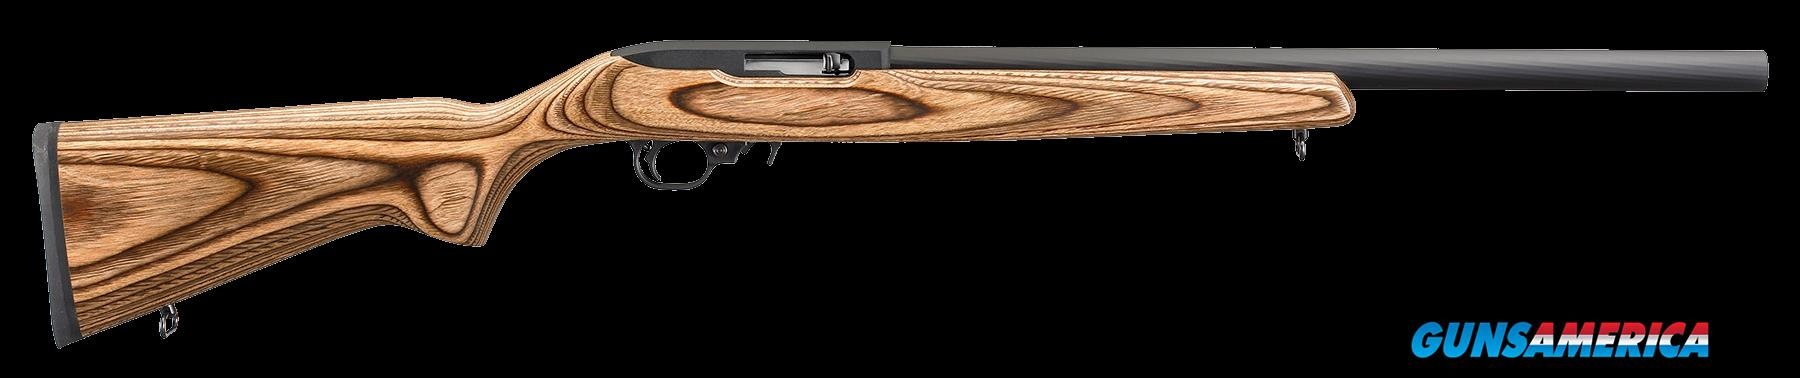 "Ruger 1121 10/22 Target Semi-Automatic 22 Long Rifle 20"" 10+1 Laminate Brown Stk Black  Guns > Rifles > R Misc Rifles"